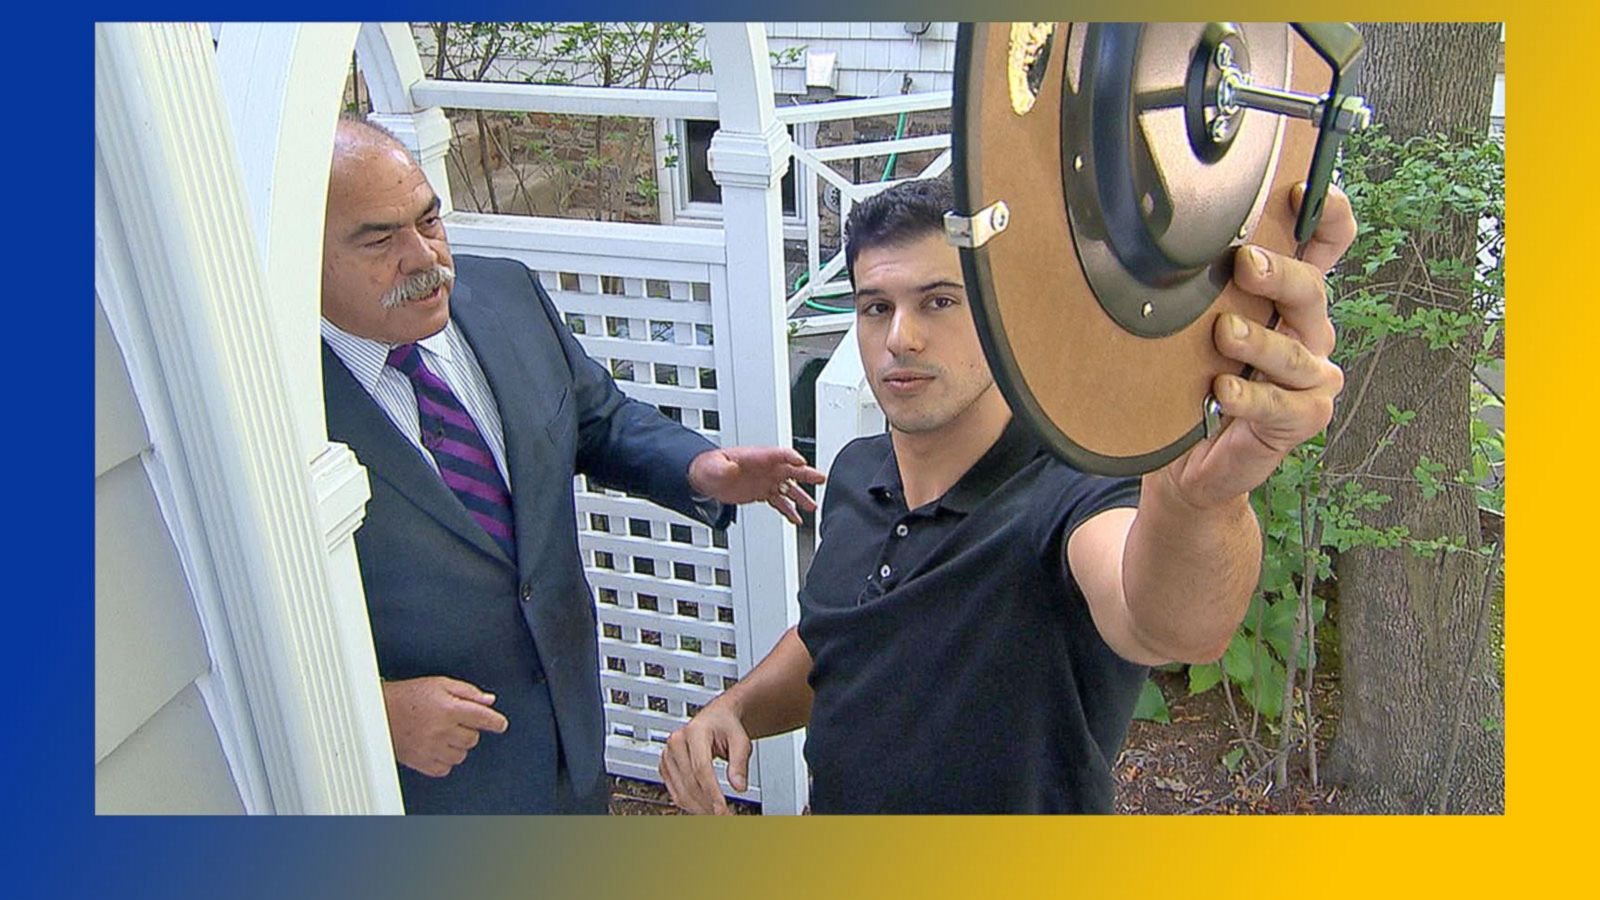 VIDEO: How to Protect Your Family From a Home Intruder